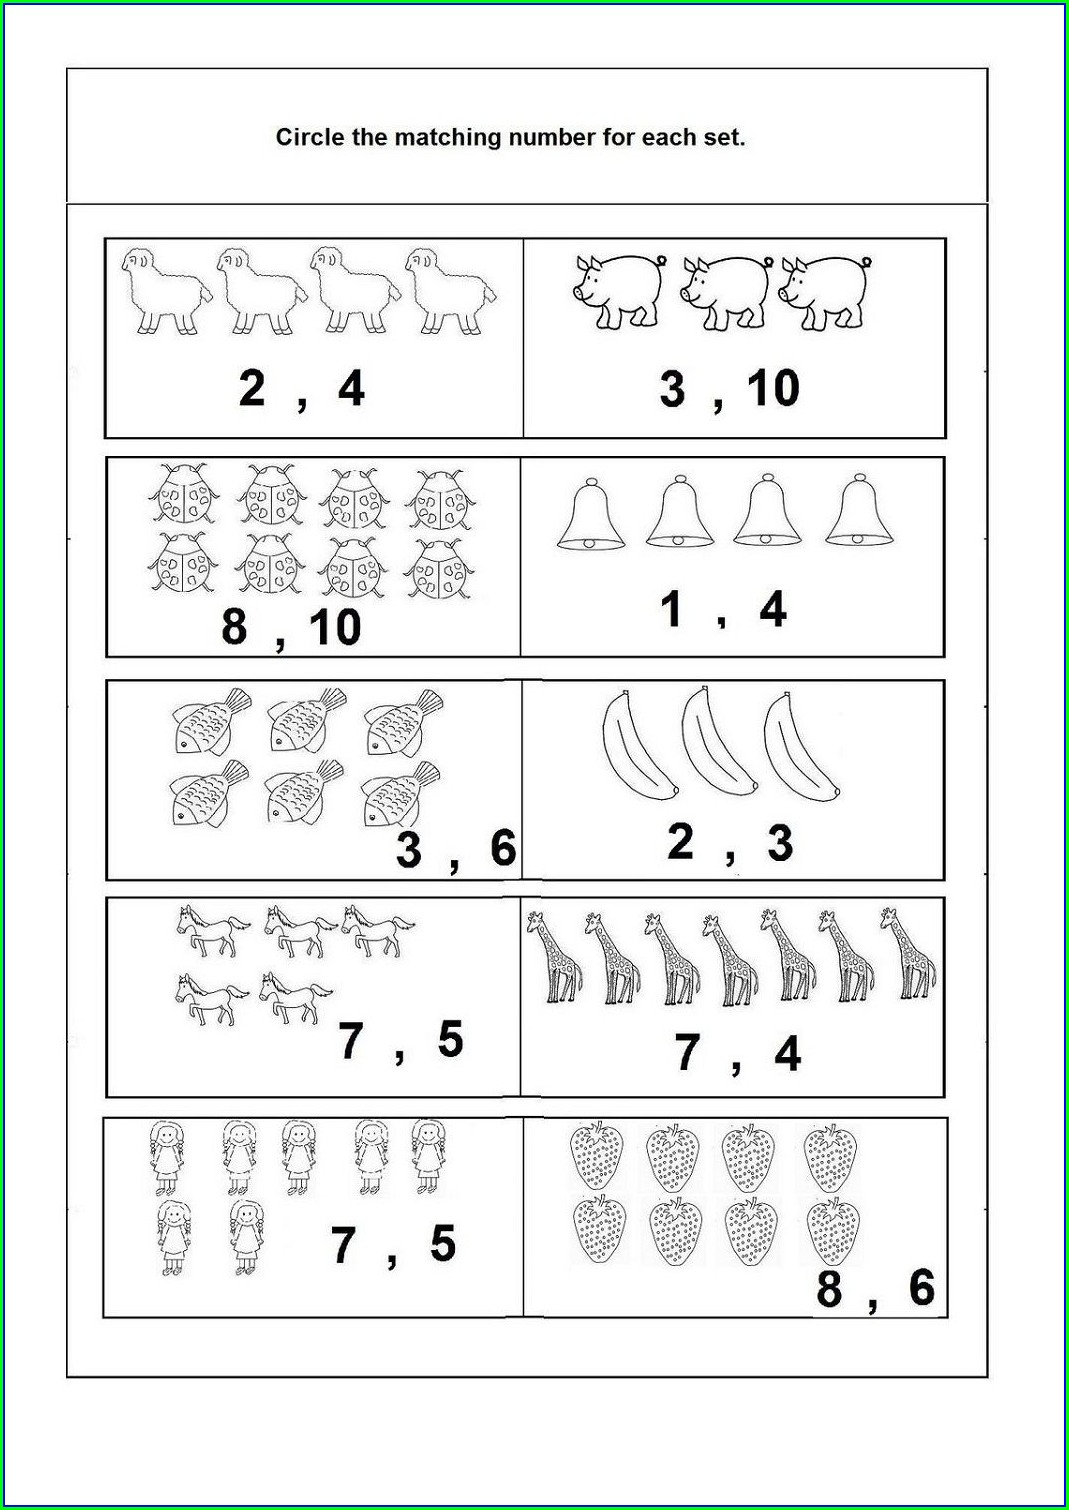 Worksheet For Kindergarten 1